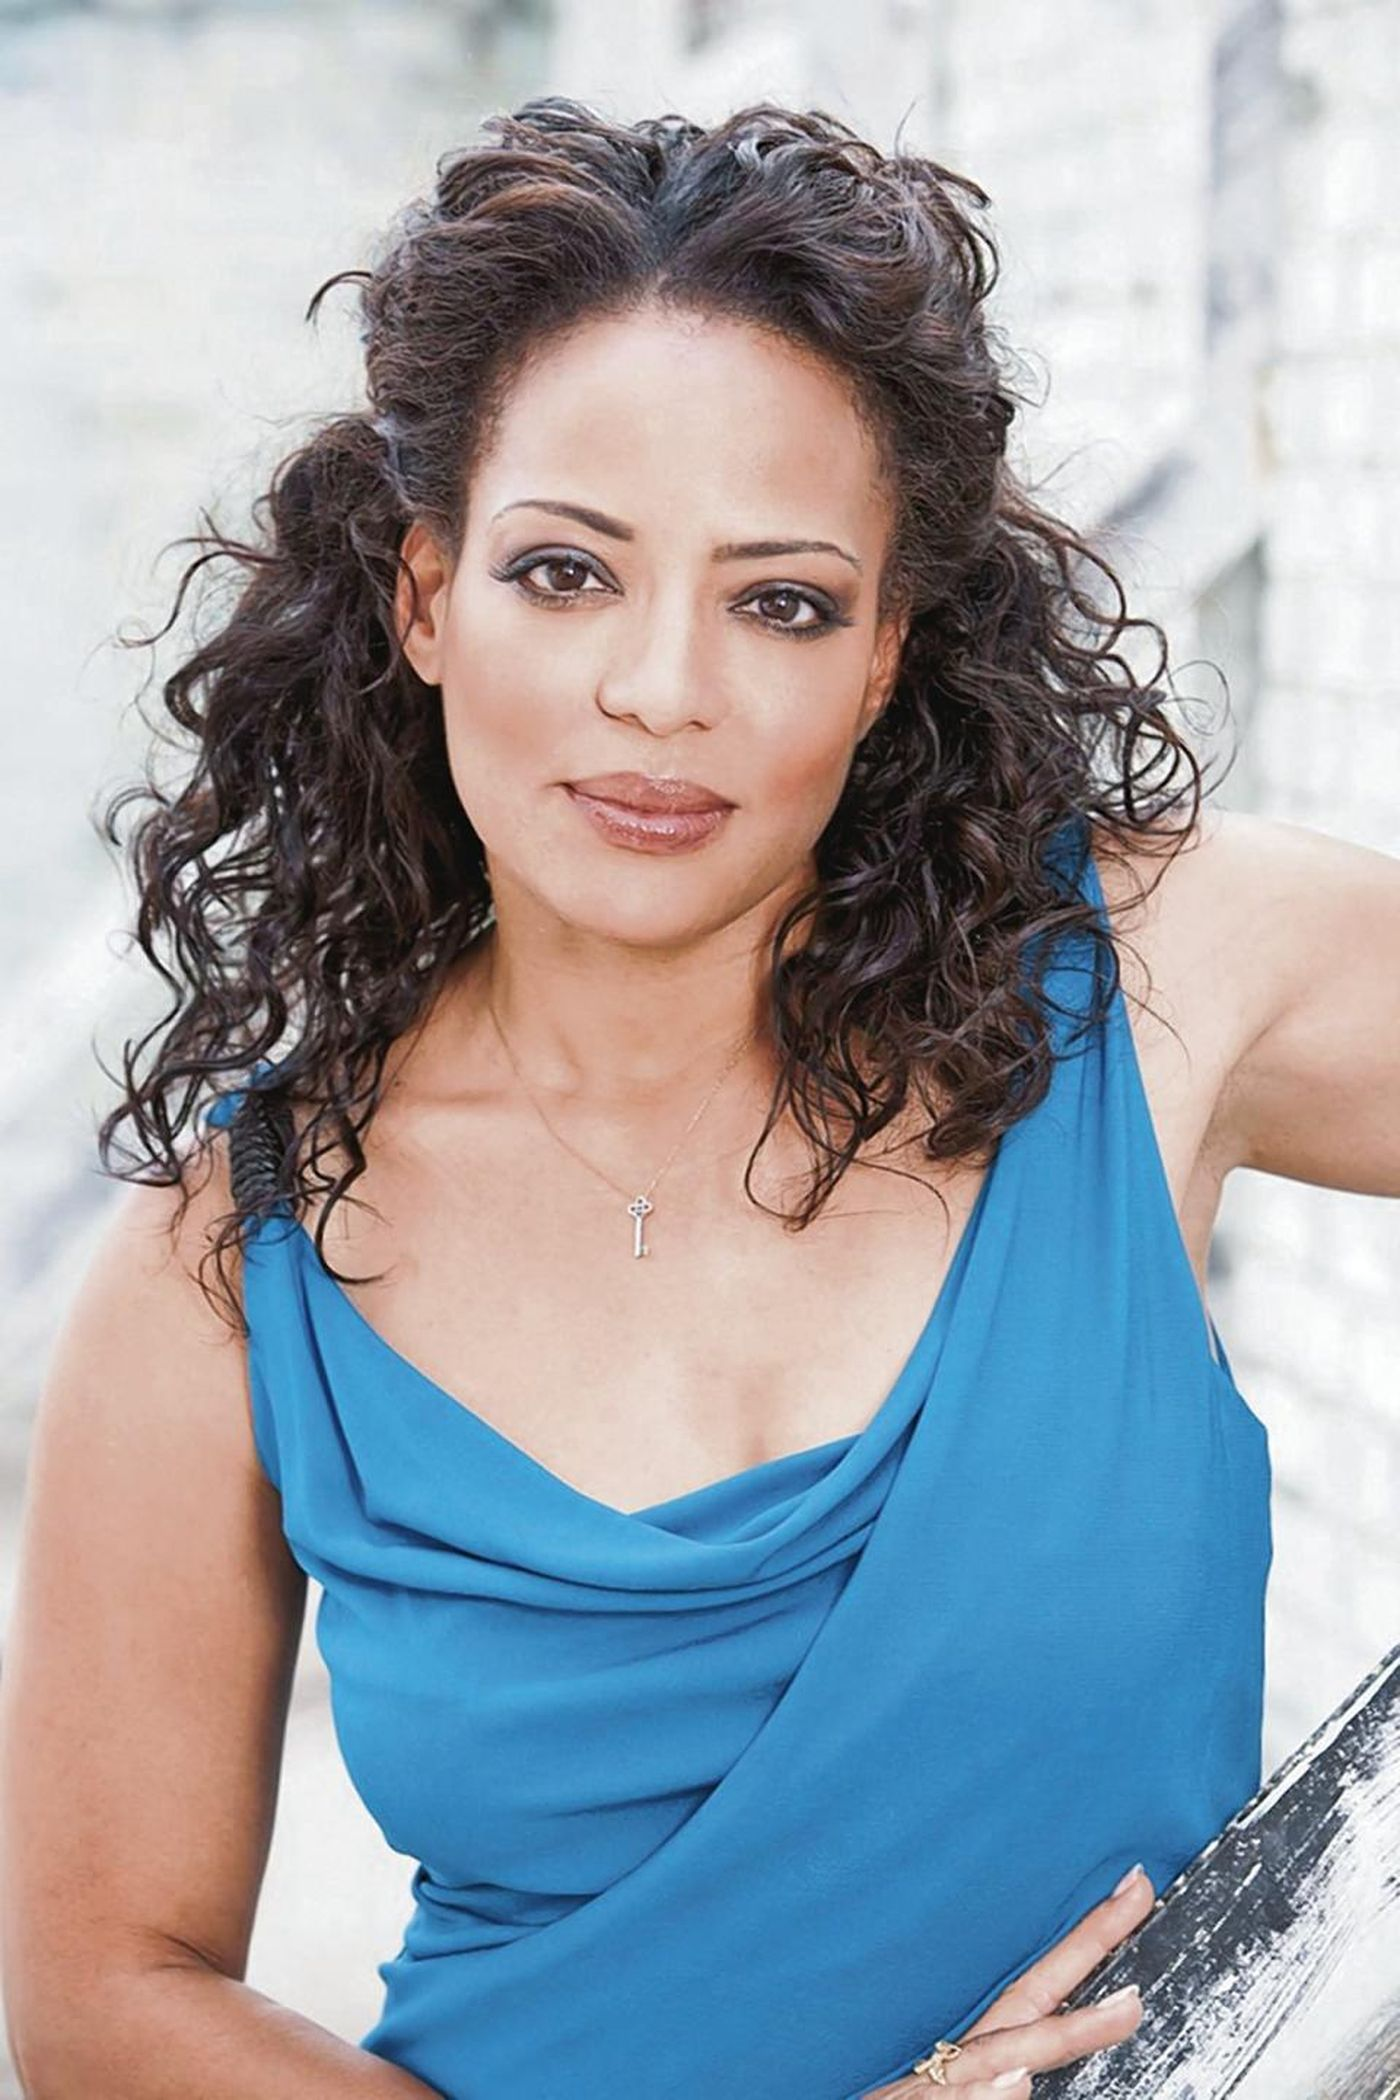 Luna Lauren Velez Beautifull